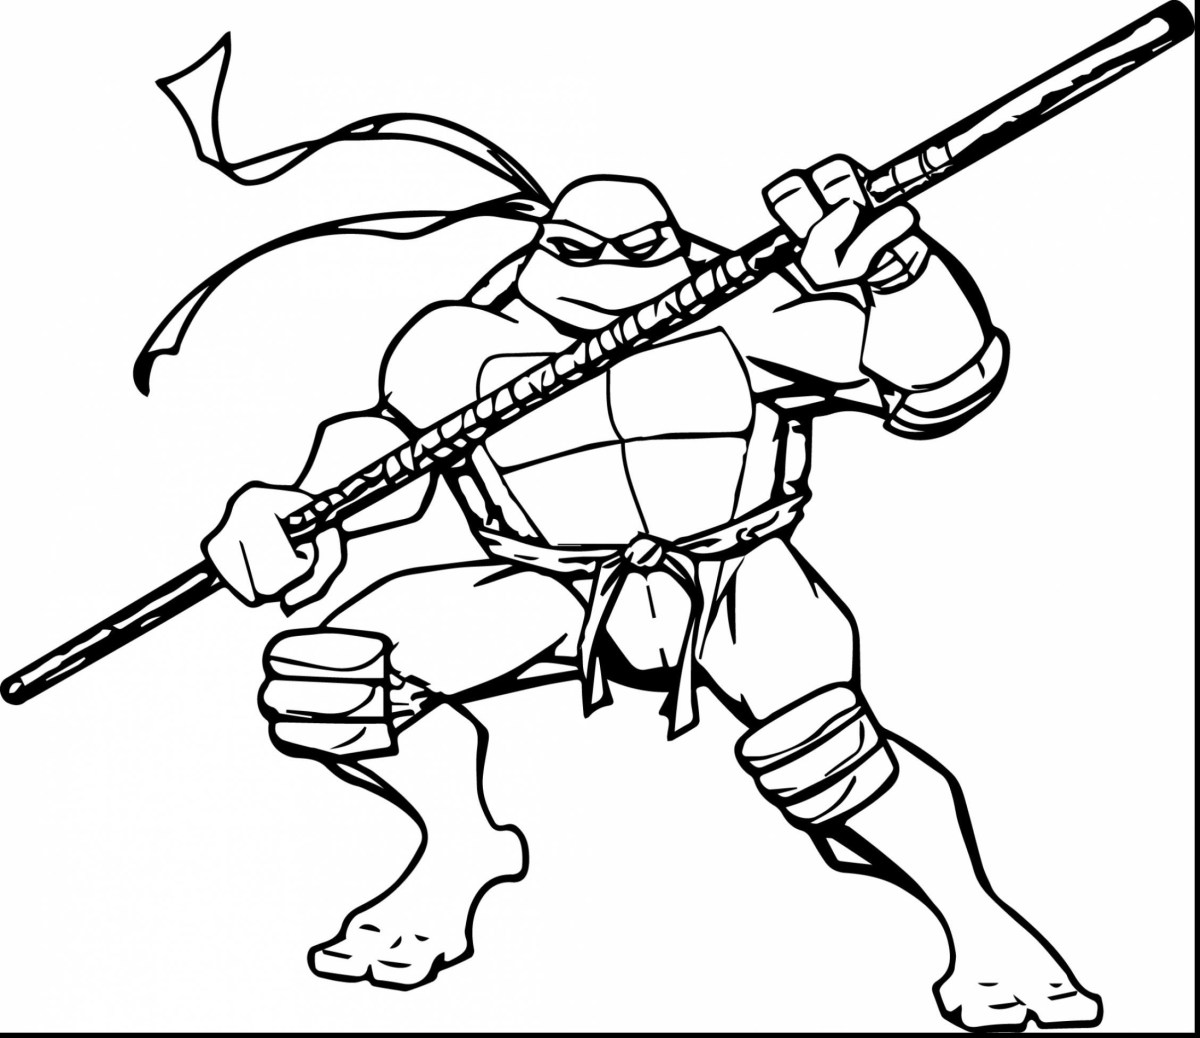 Ninja Turtles Coloring Pages Teenage Mutant Ninja Turtles ...